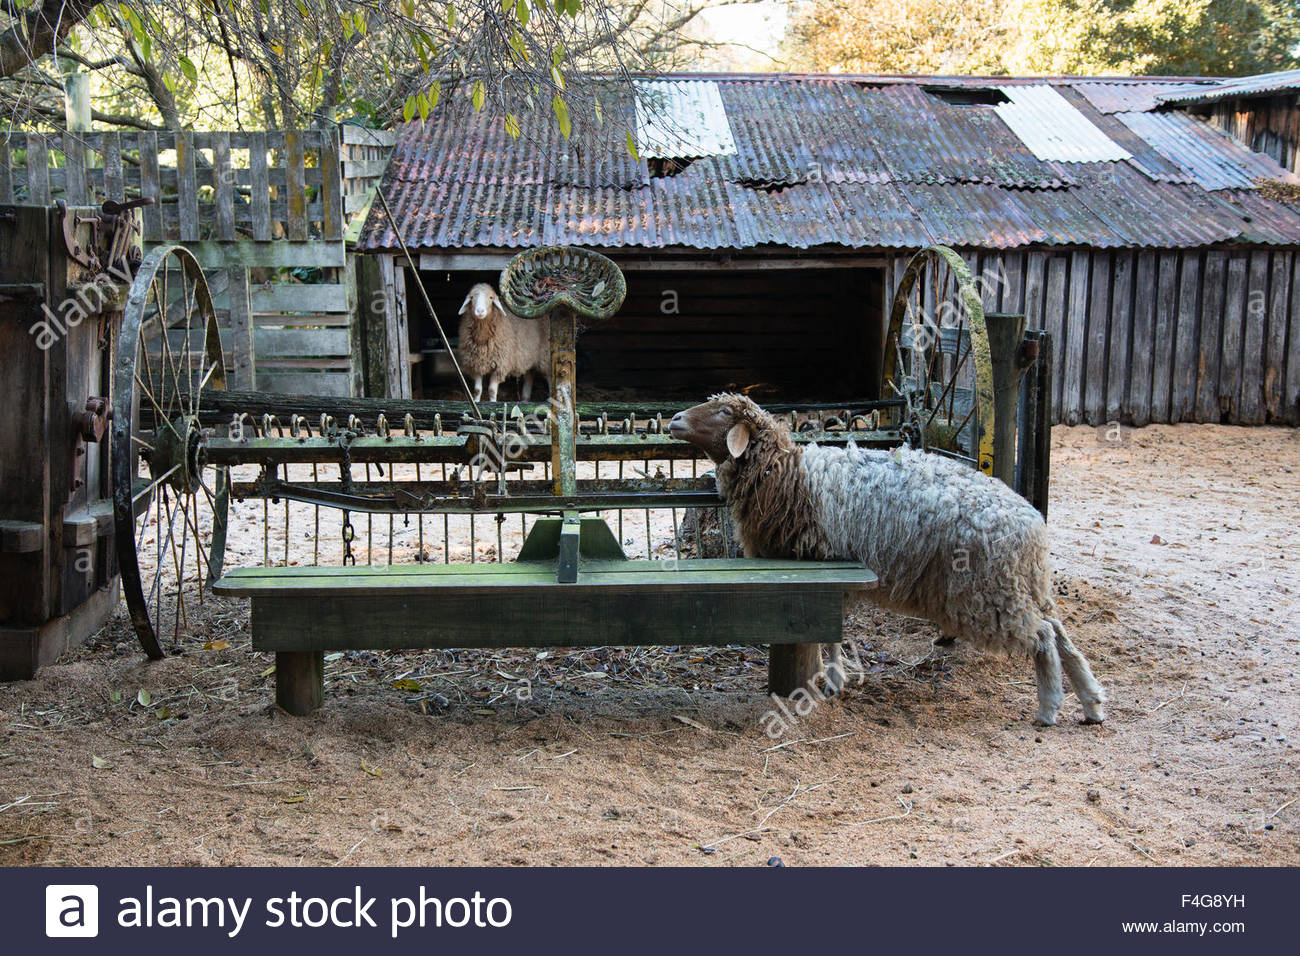 Two sheep and old harrow on country yard, Canterbury, New Zealand - Stock Image